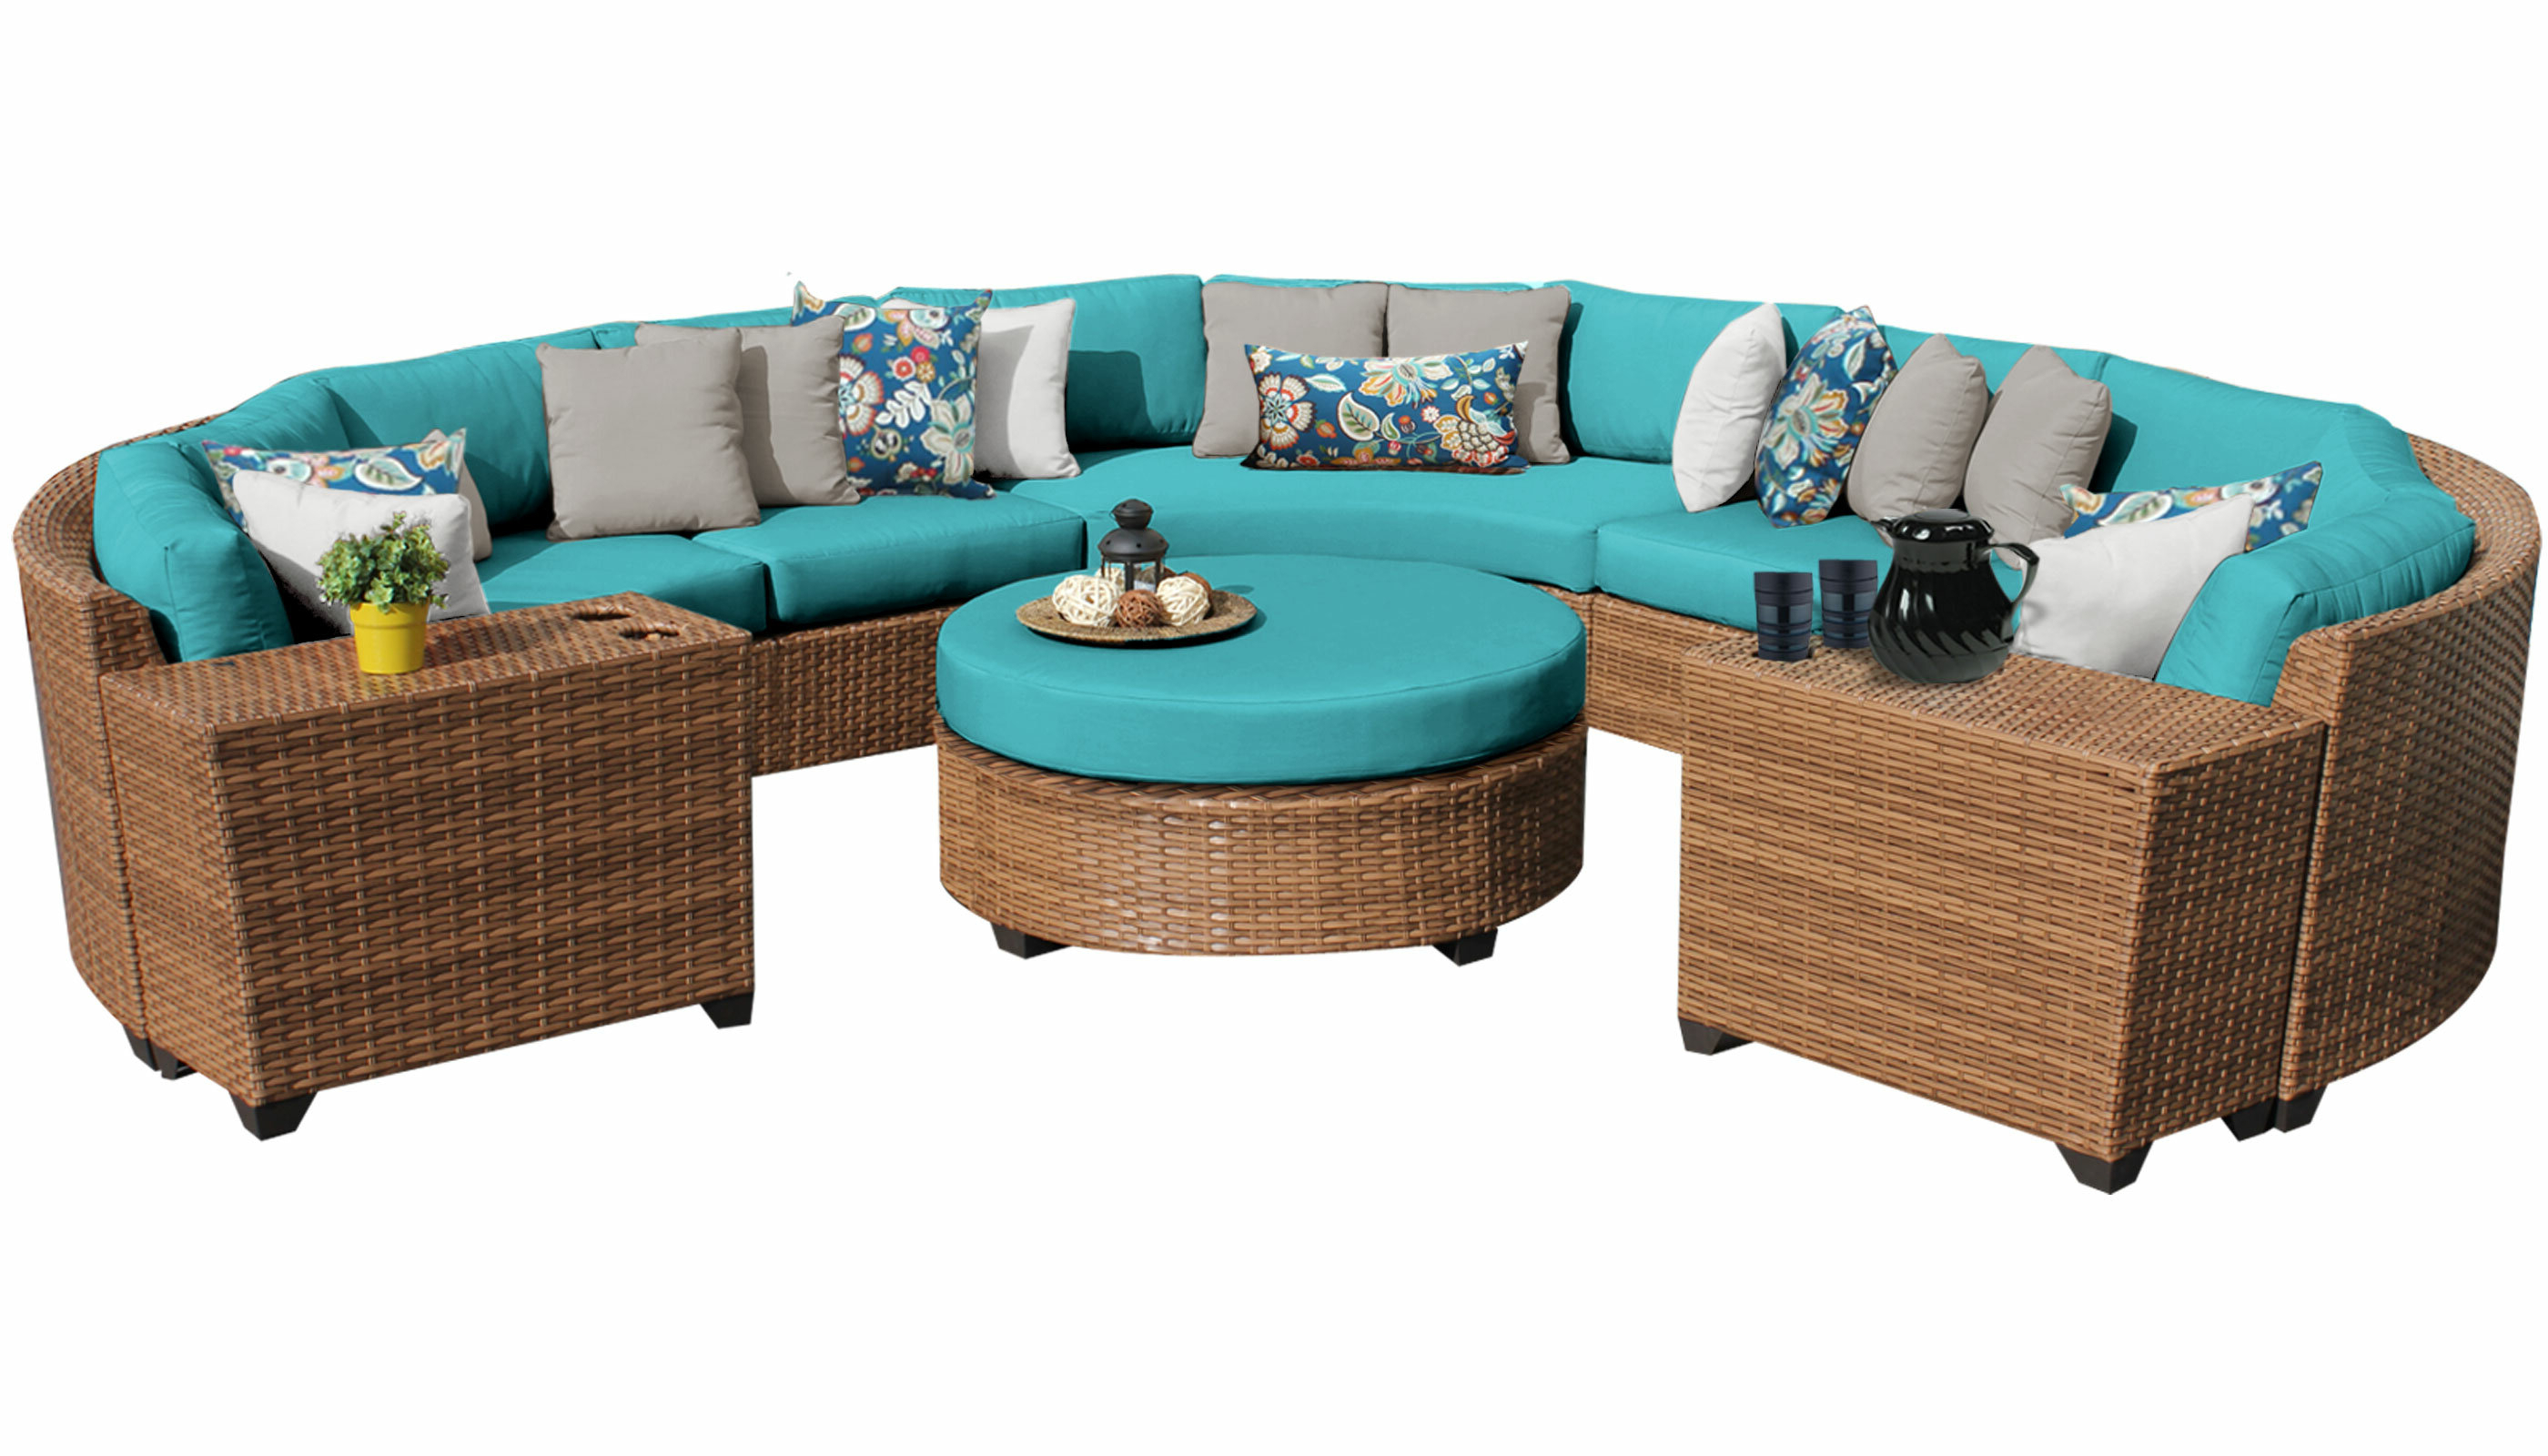 Trendy Waterbury 7 Piece Rattan Sectional Set With Cushions Regarding Waterbury Curved Armless Sofa With Cushions (View 7 of 20)